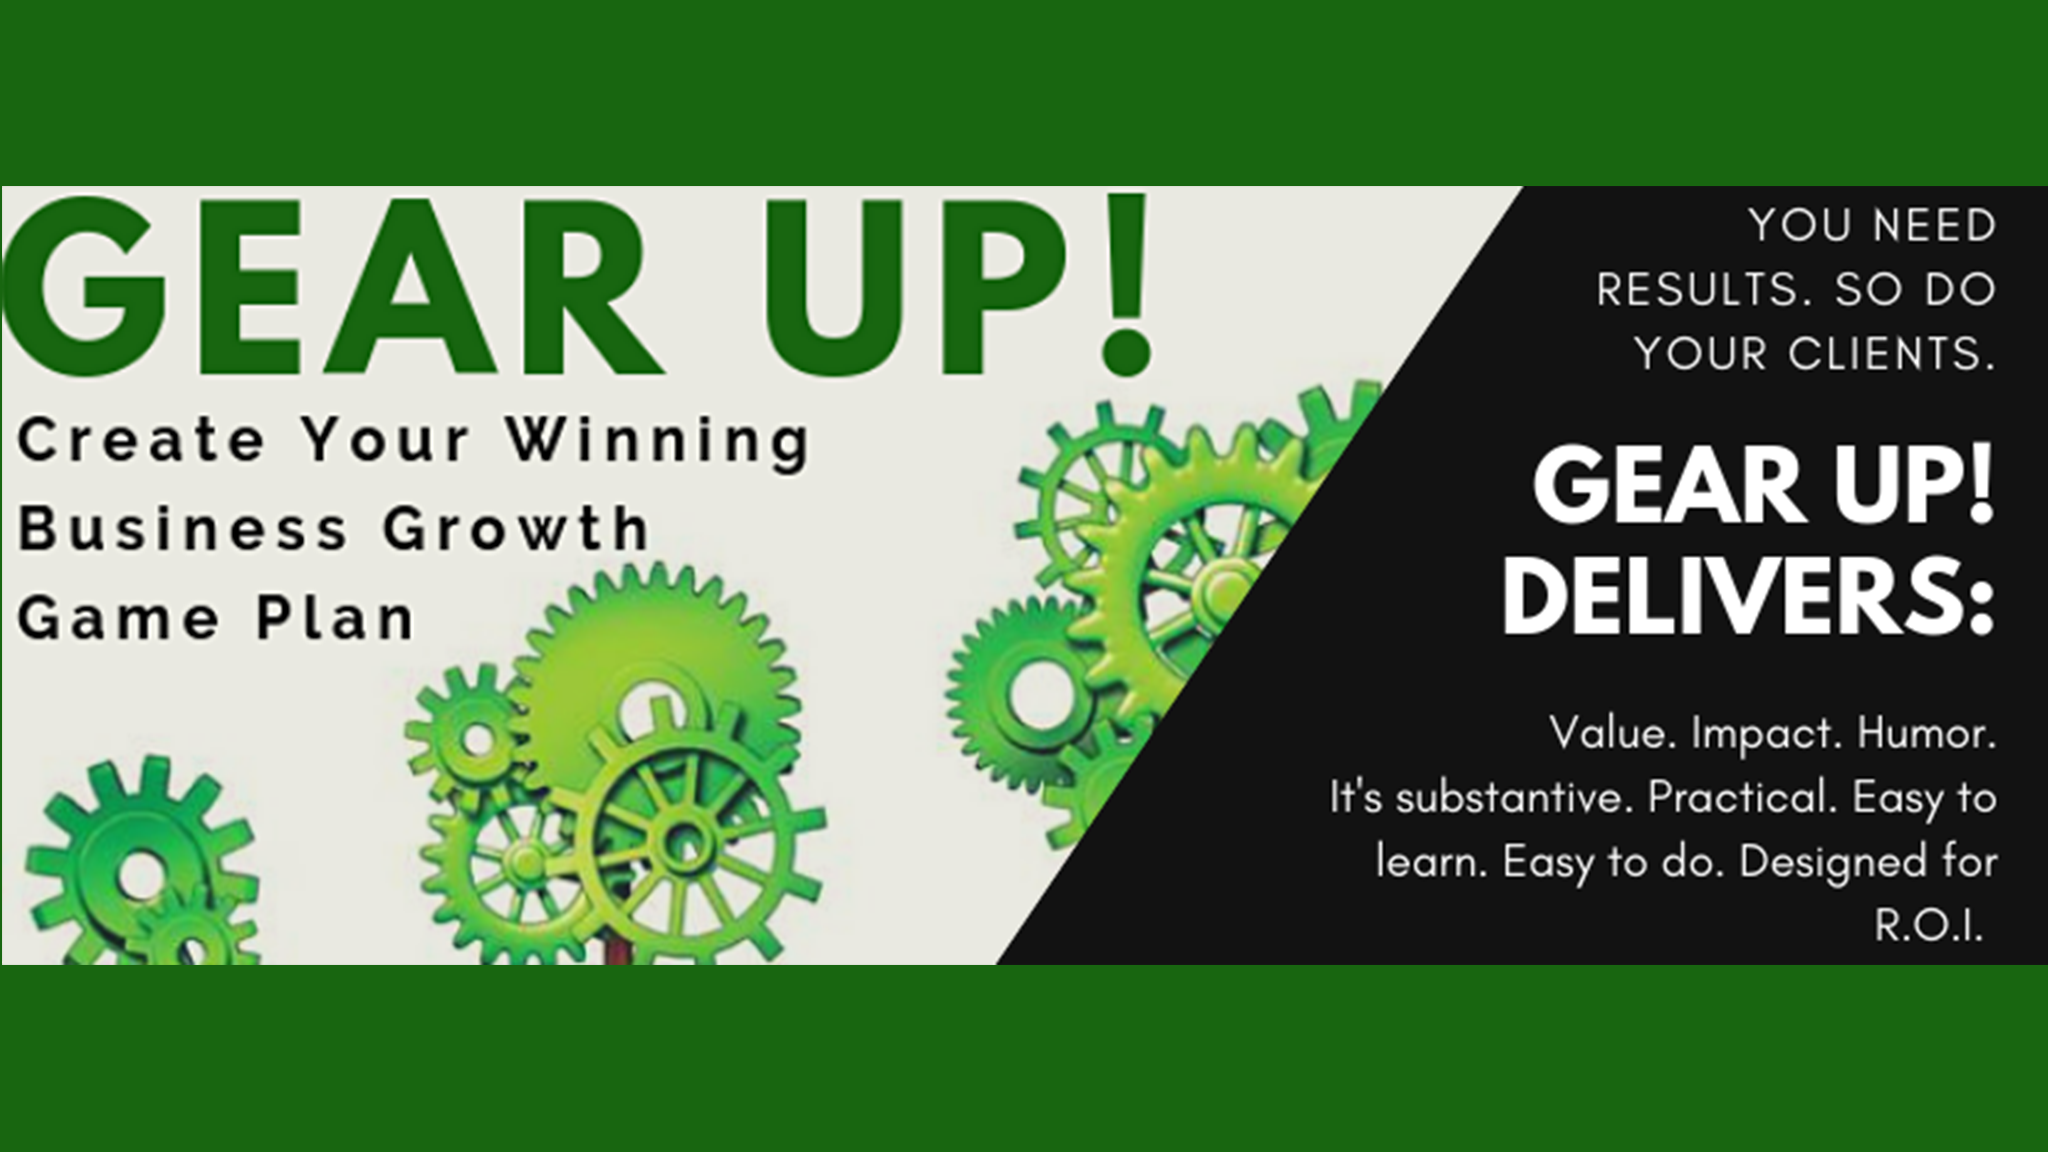 GEAR UP! Kickstart Your Business Growth for the Next 12 Months!